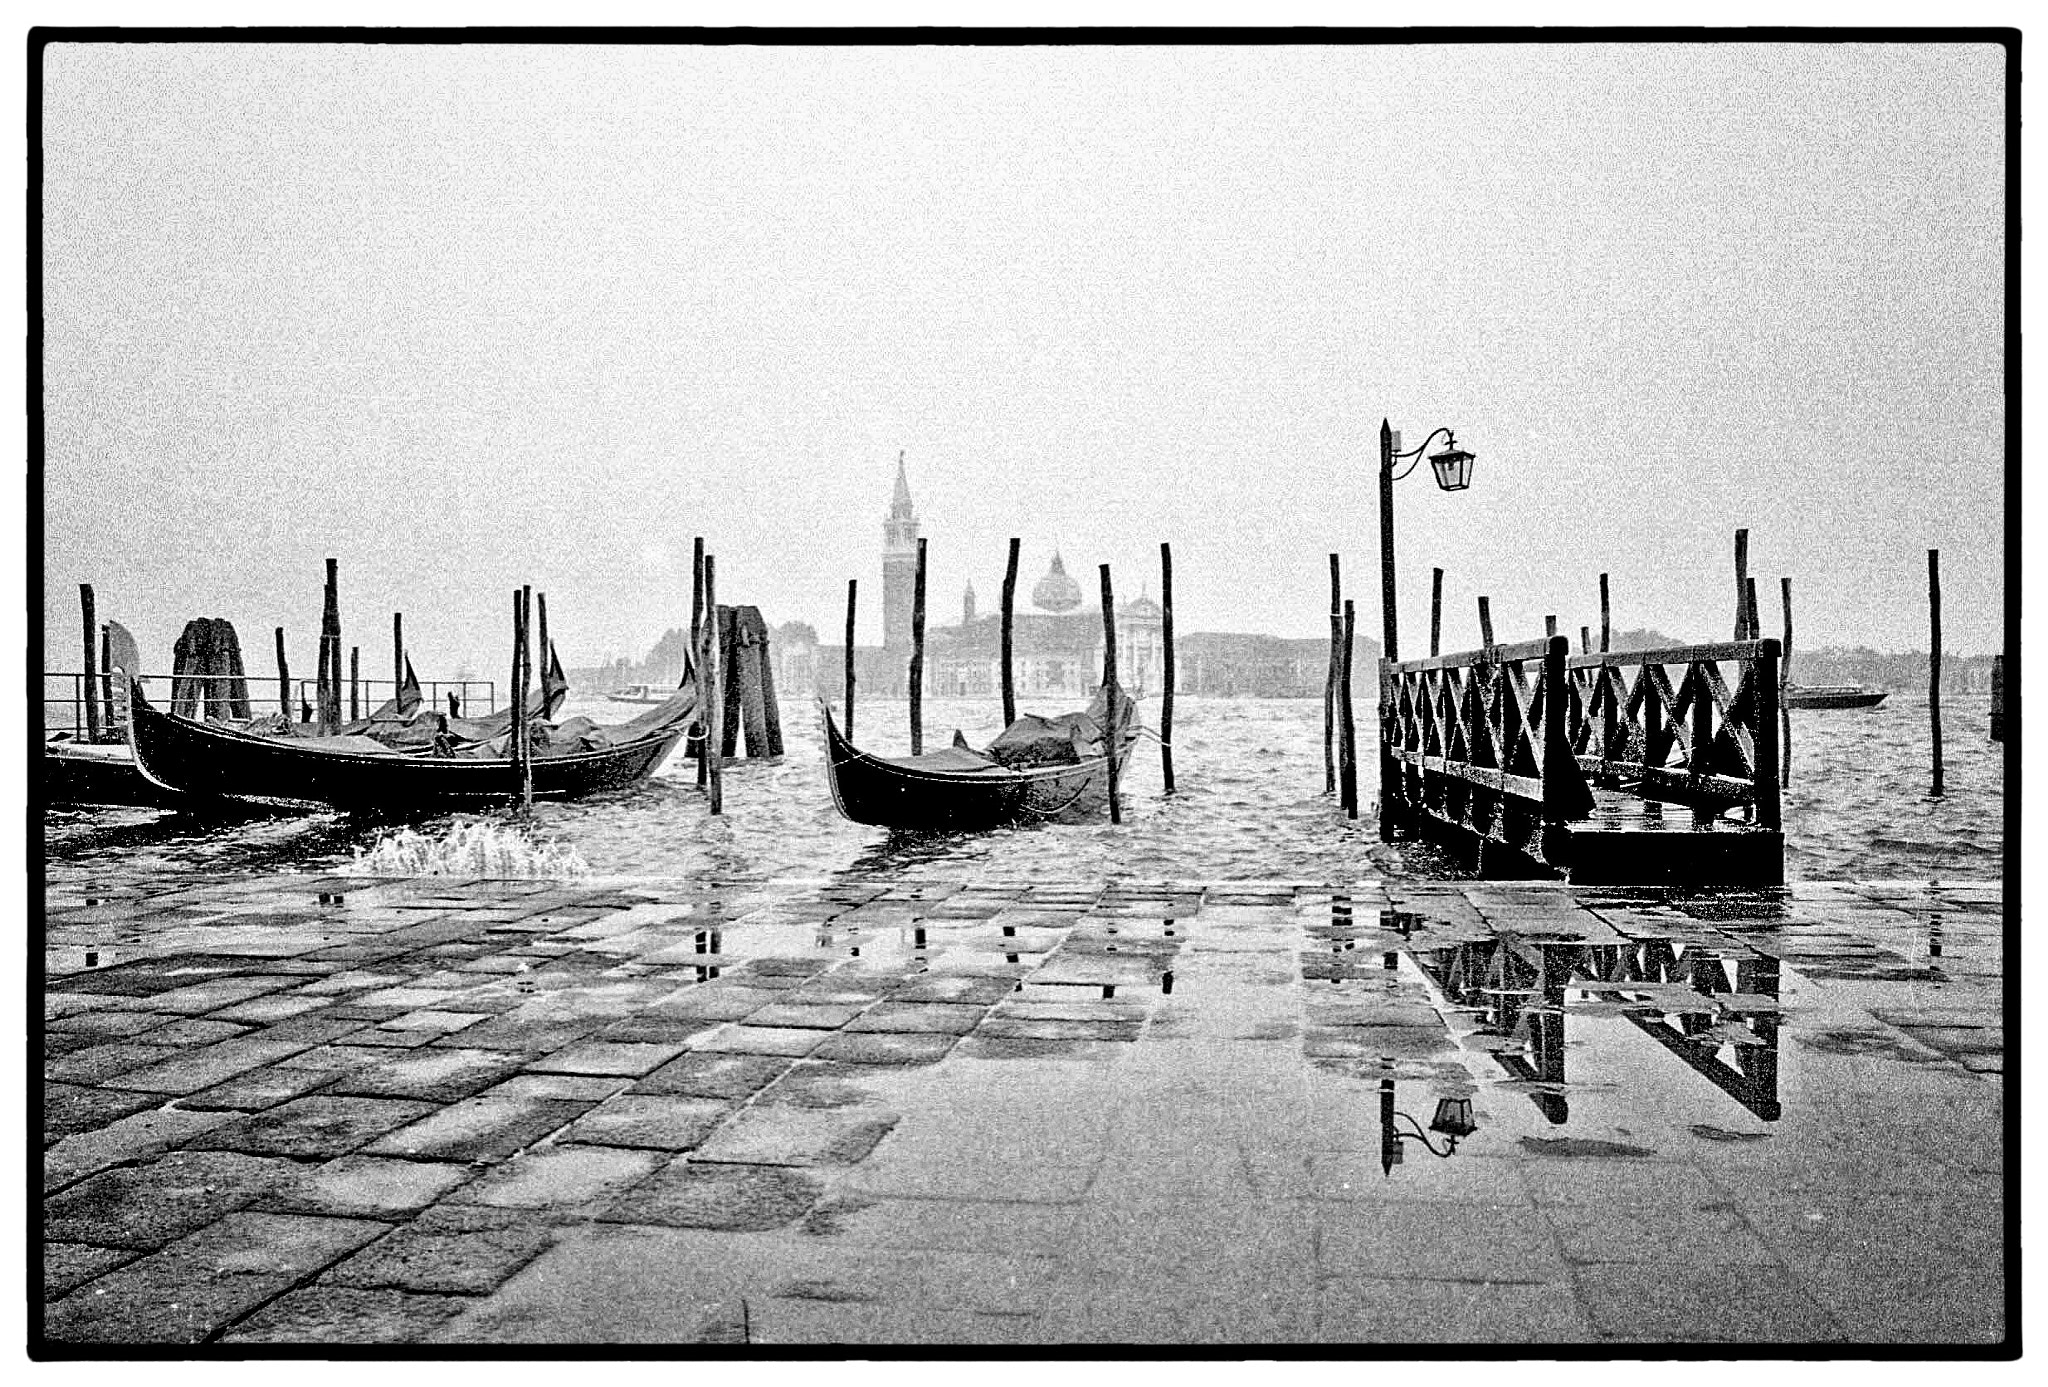 Photograph Gondole by Gianni Catto on 500px